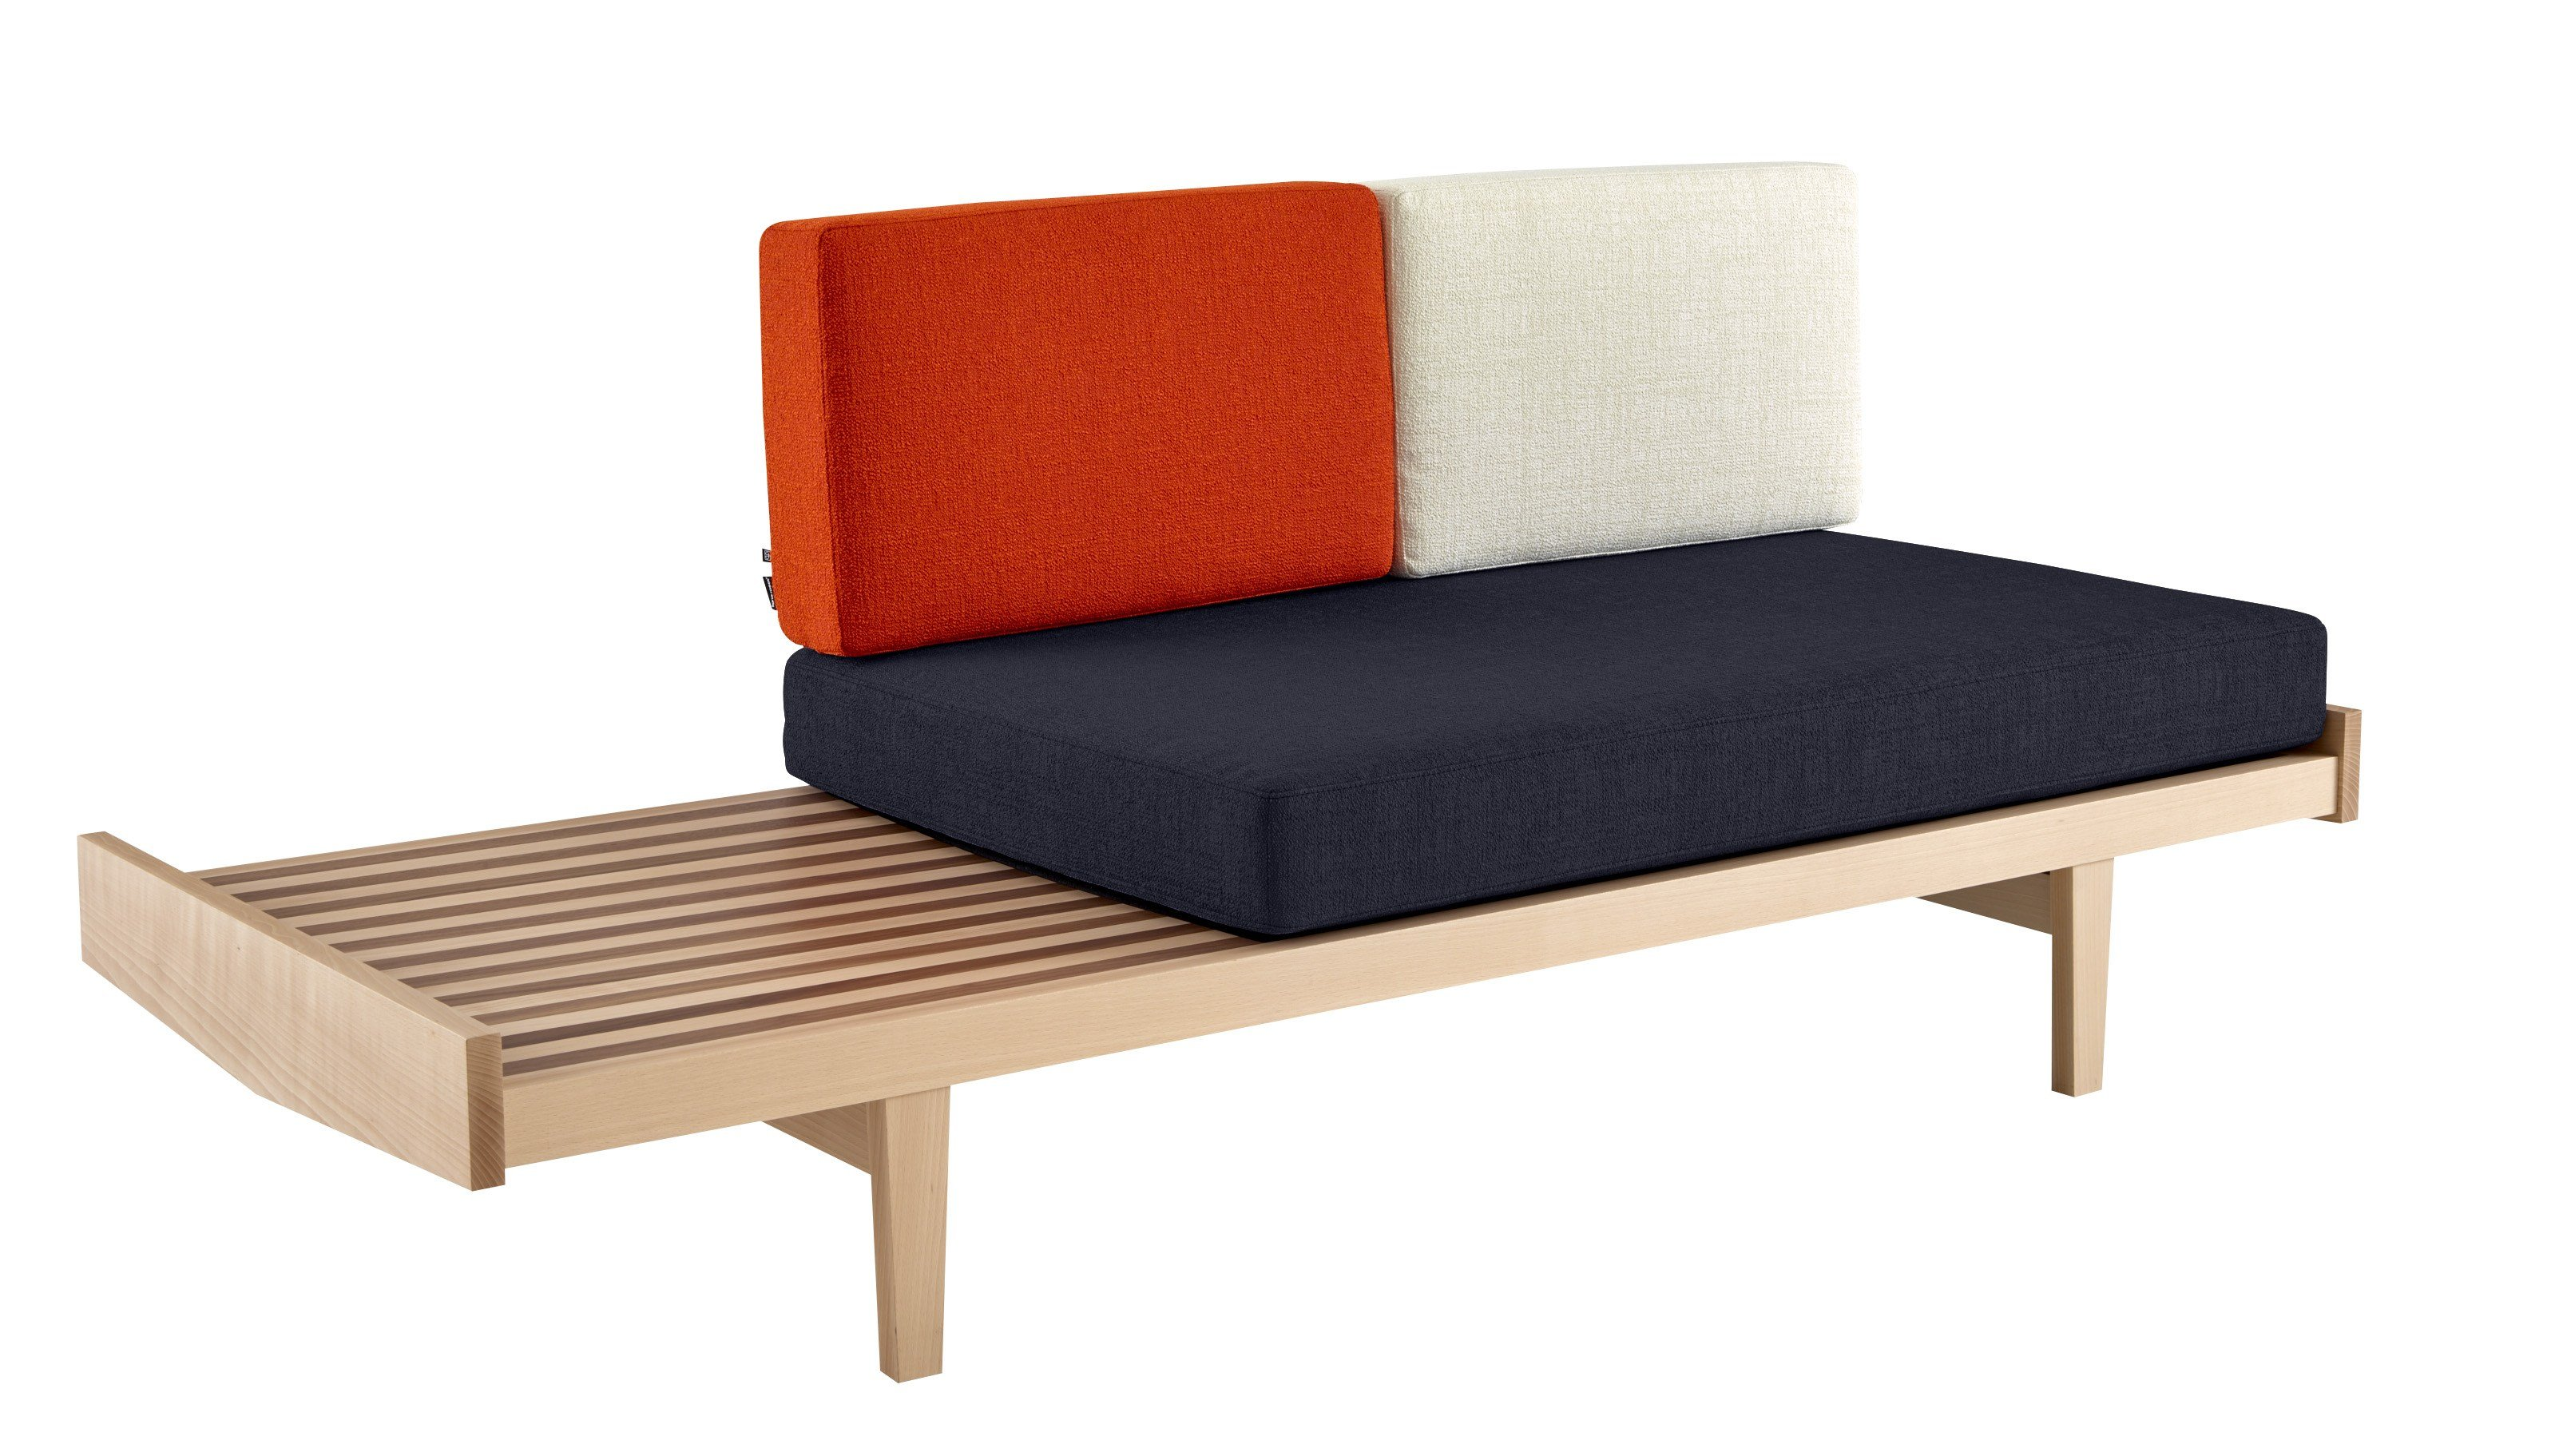 Oak sofa bed daybed by roset italia design pierre paulin for Interieur accessoires